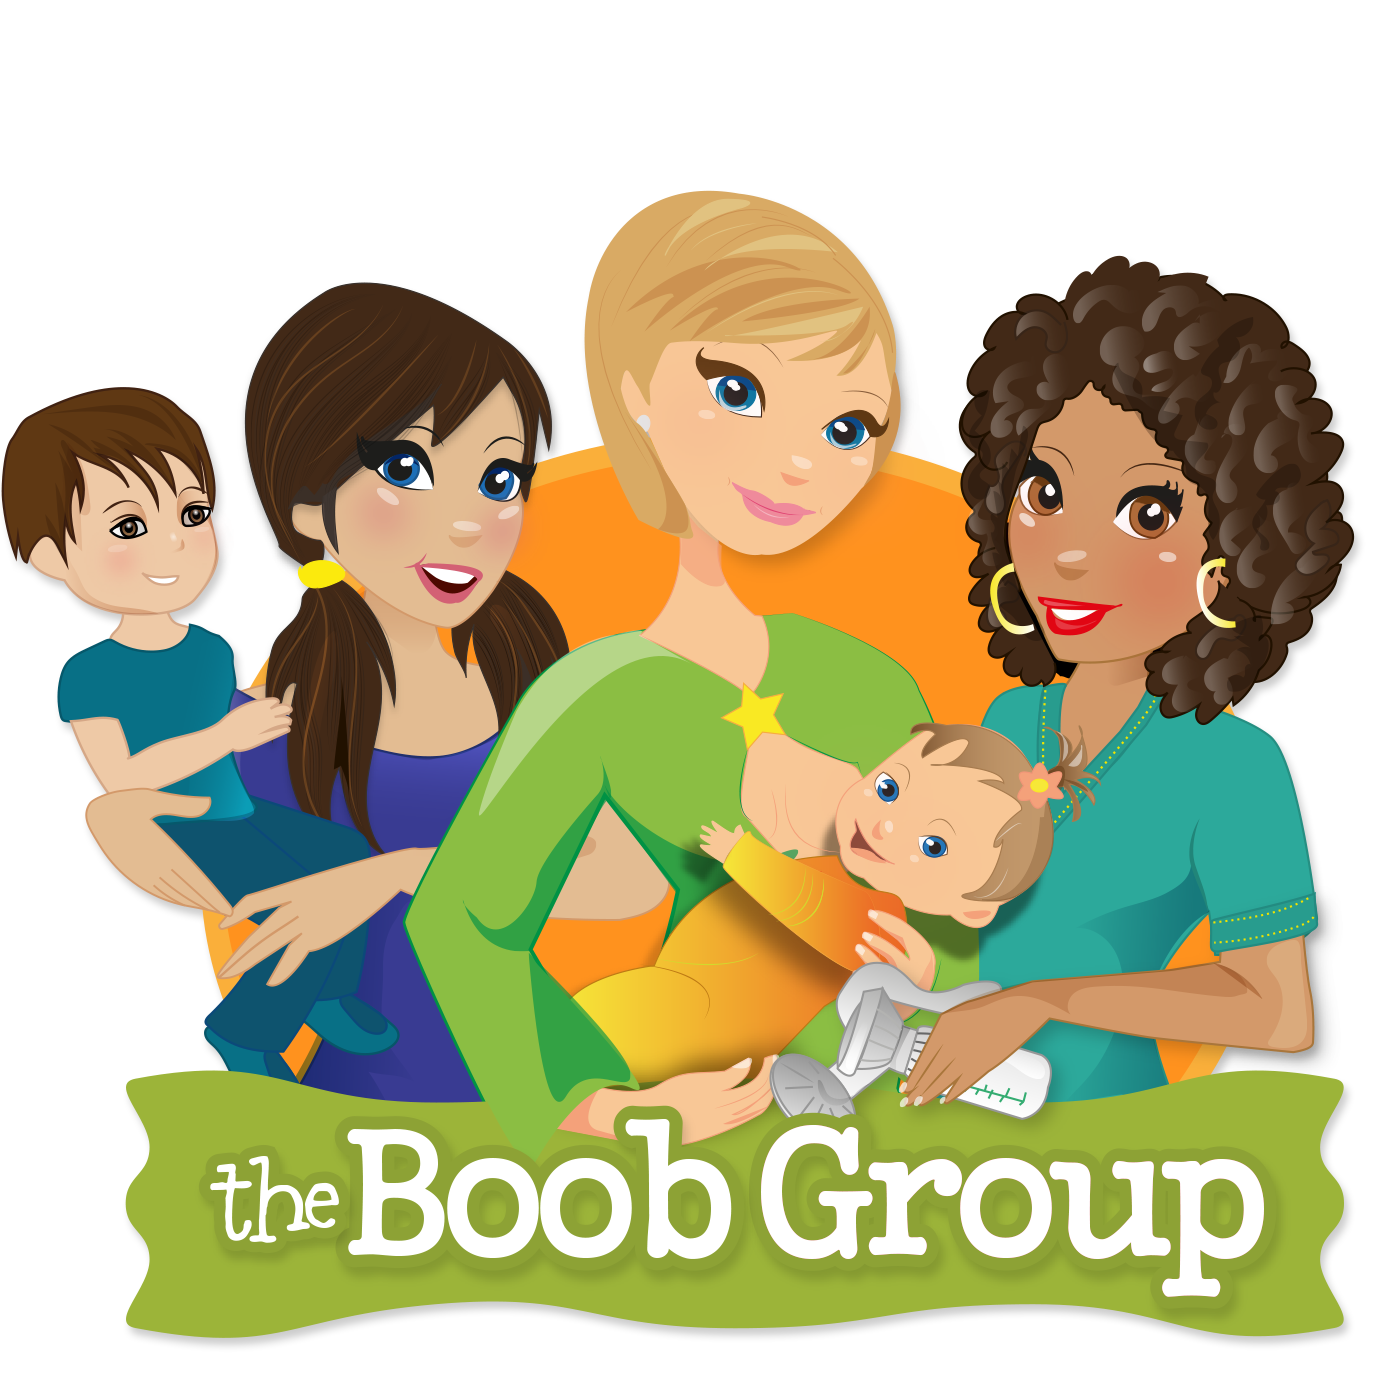 The Boob Group podcast logo